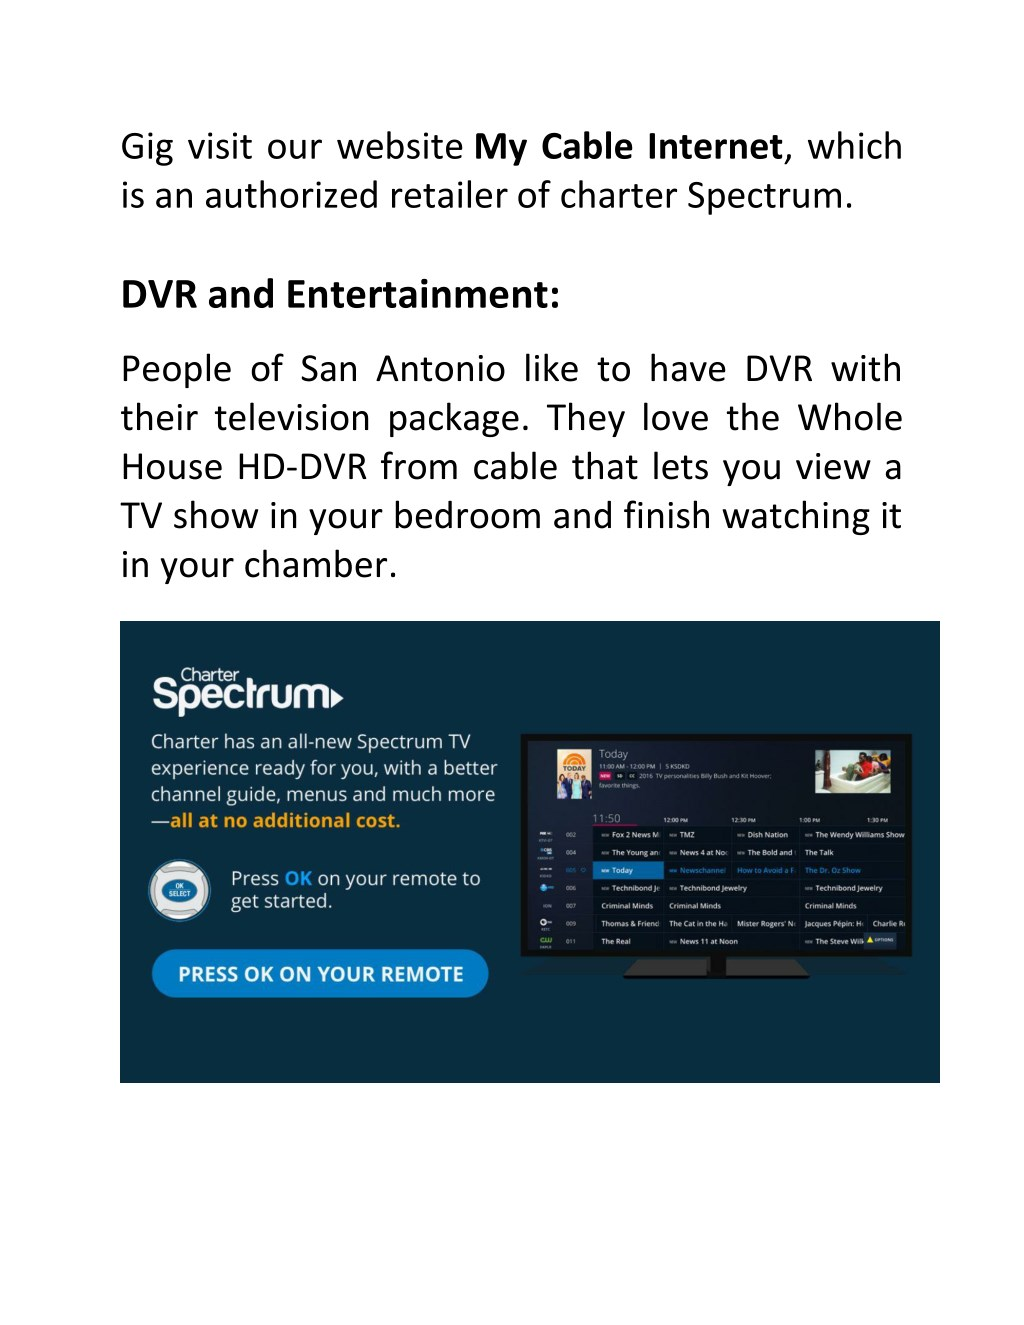 PPT - Unusual Service of Charter Spectrum Call PowerPoint